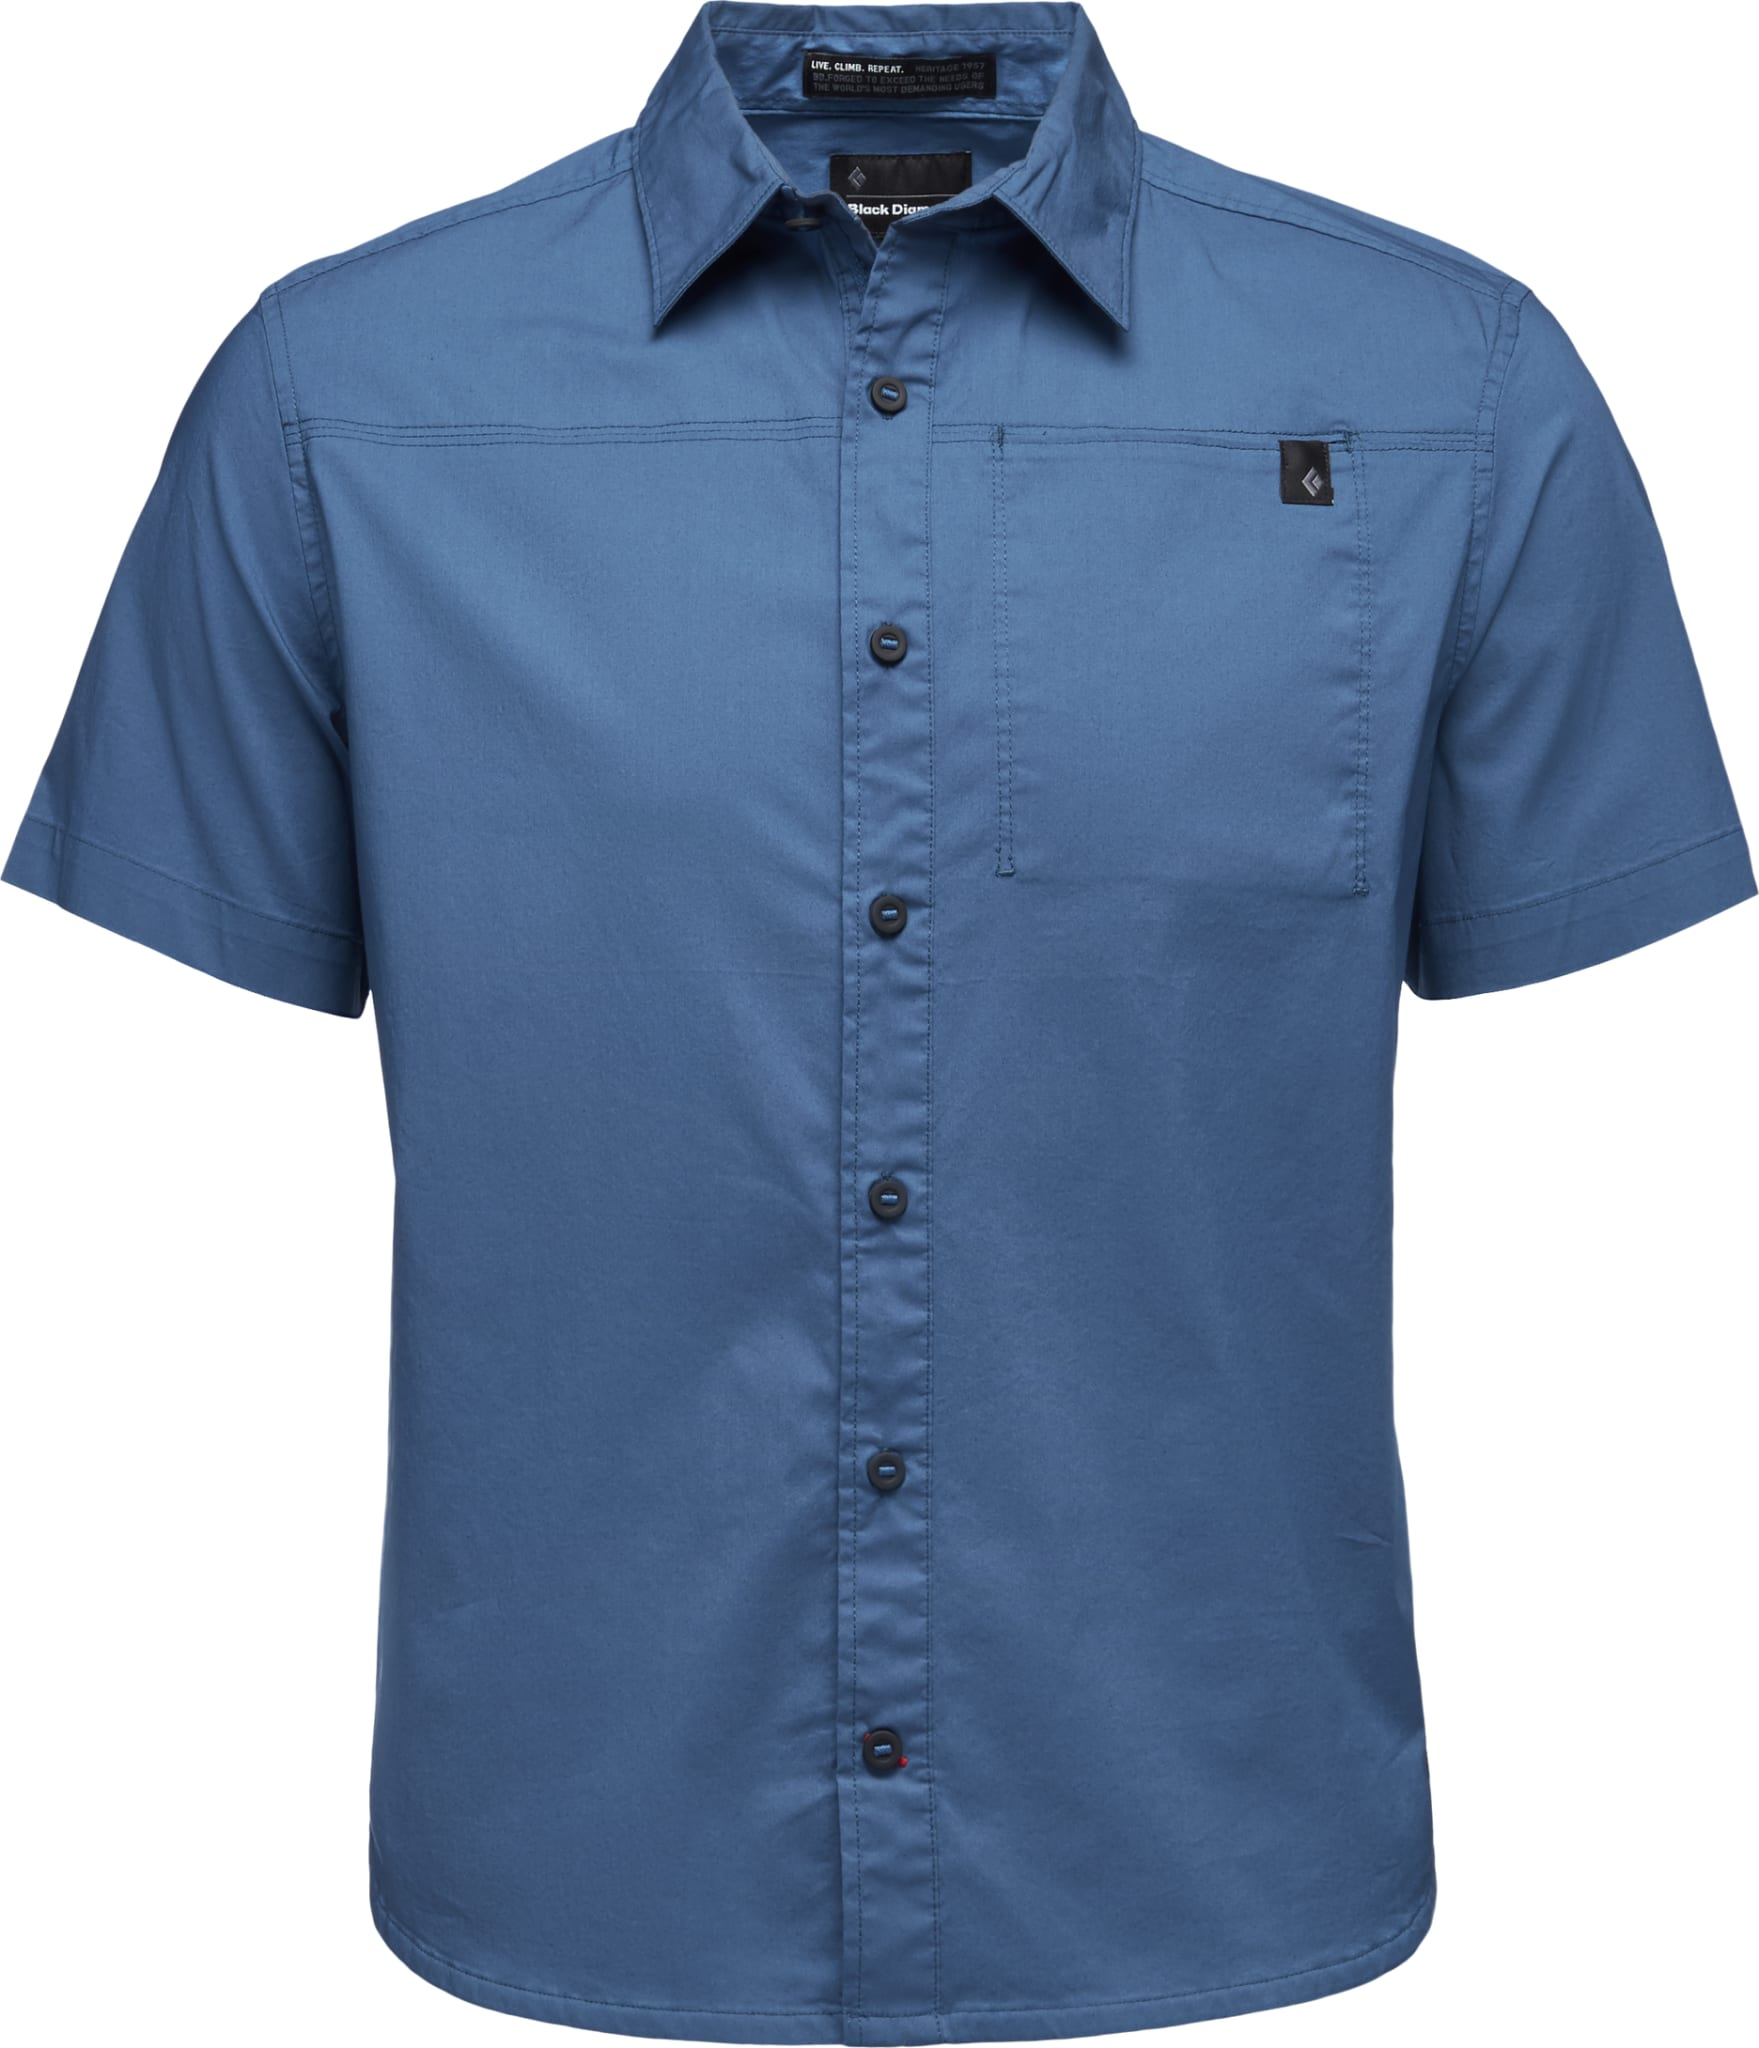 SS STRETCH OPERATOR SHIRT